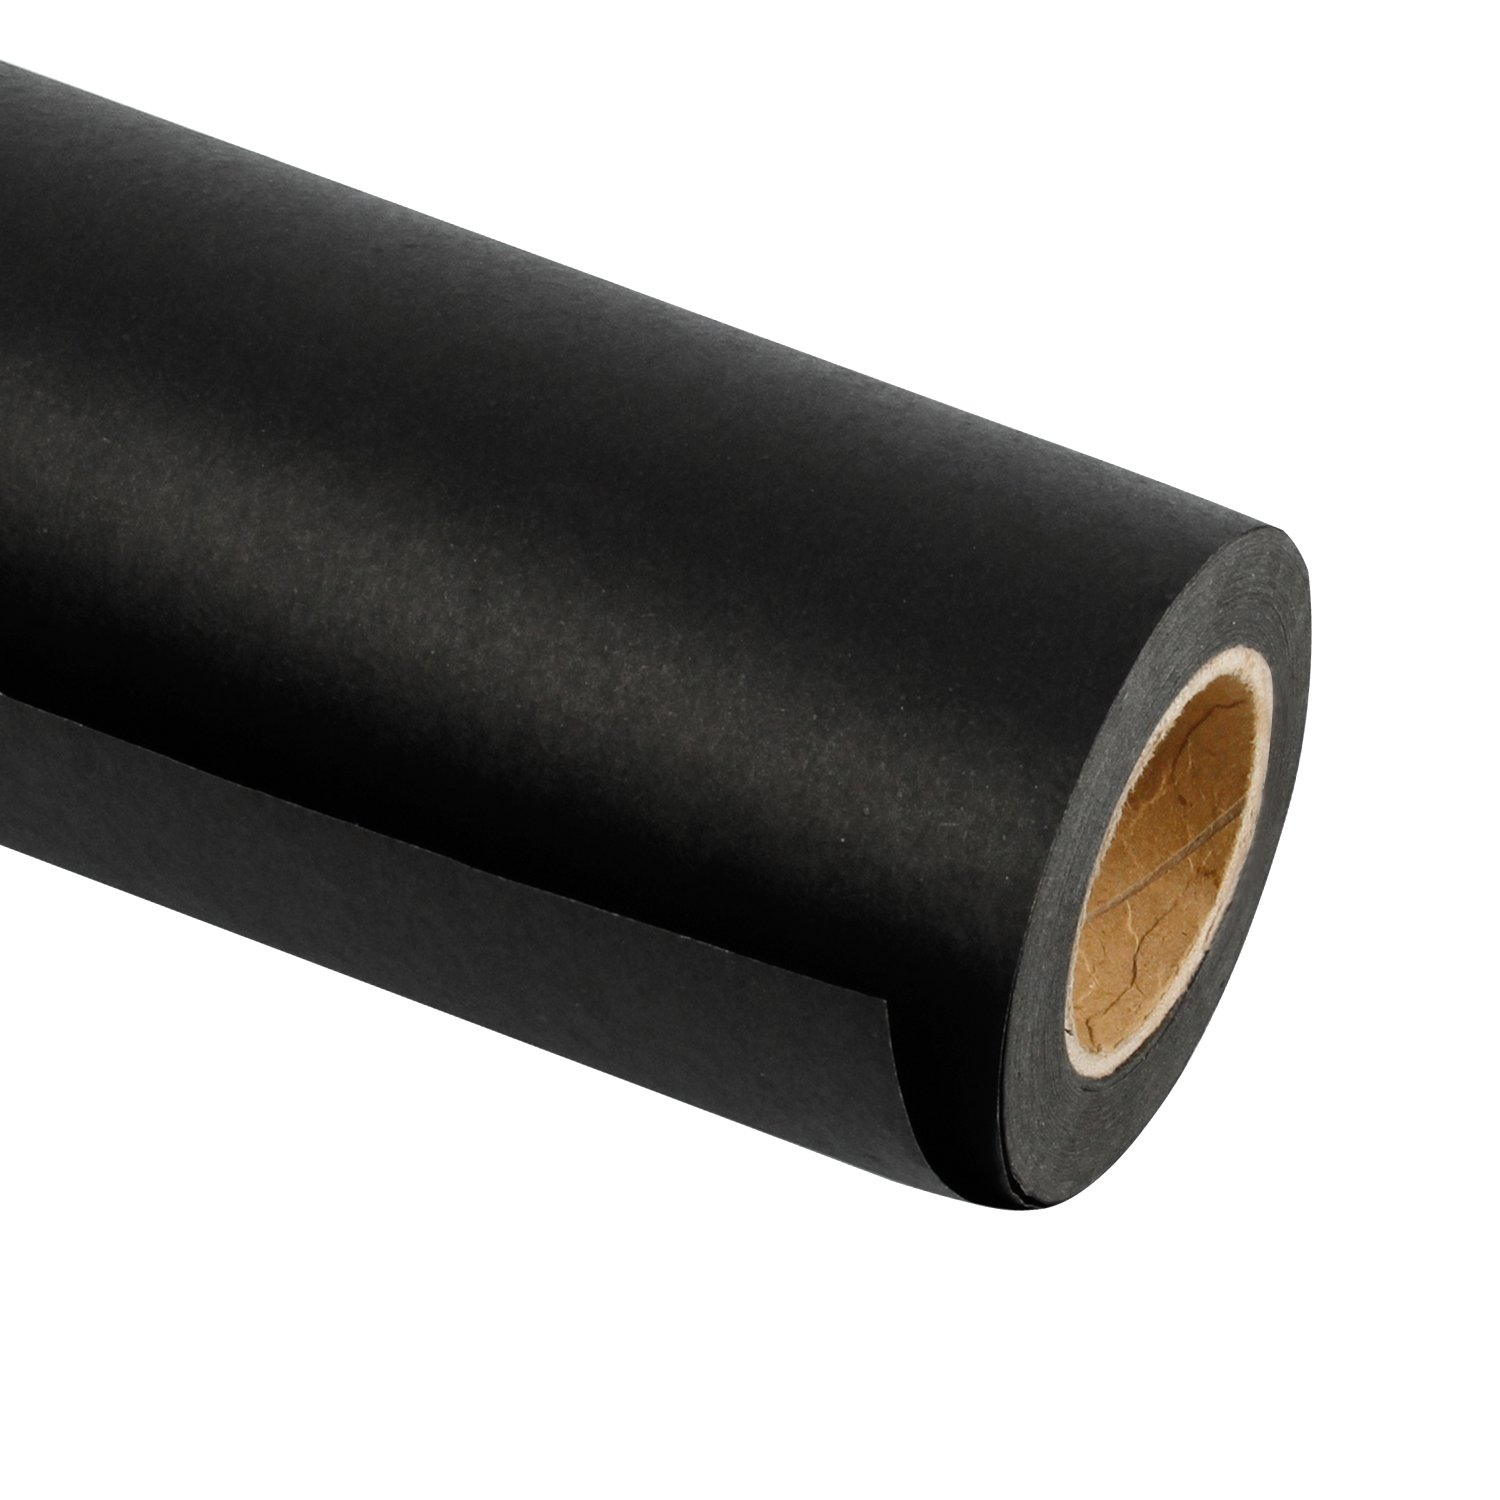 RUSPEPA Black Kraft Paper Roll - 24 inch x 100 Feet - Recycled Paper Perfect for for Crafts, Art, Gift Wrapping, Packing, Postal, Shipping, Dunnage & Parcel